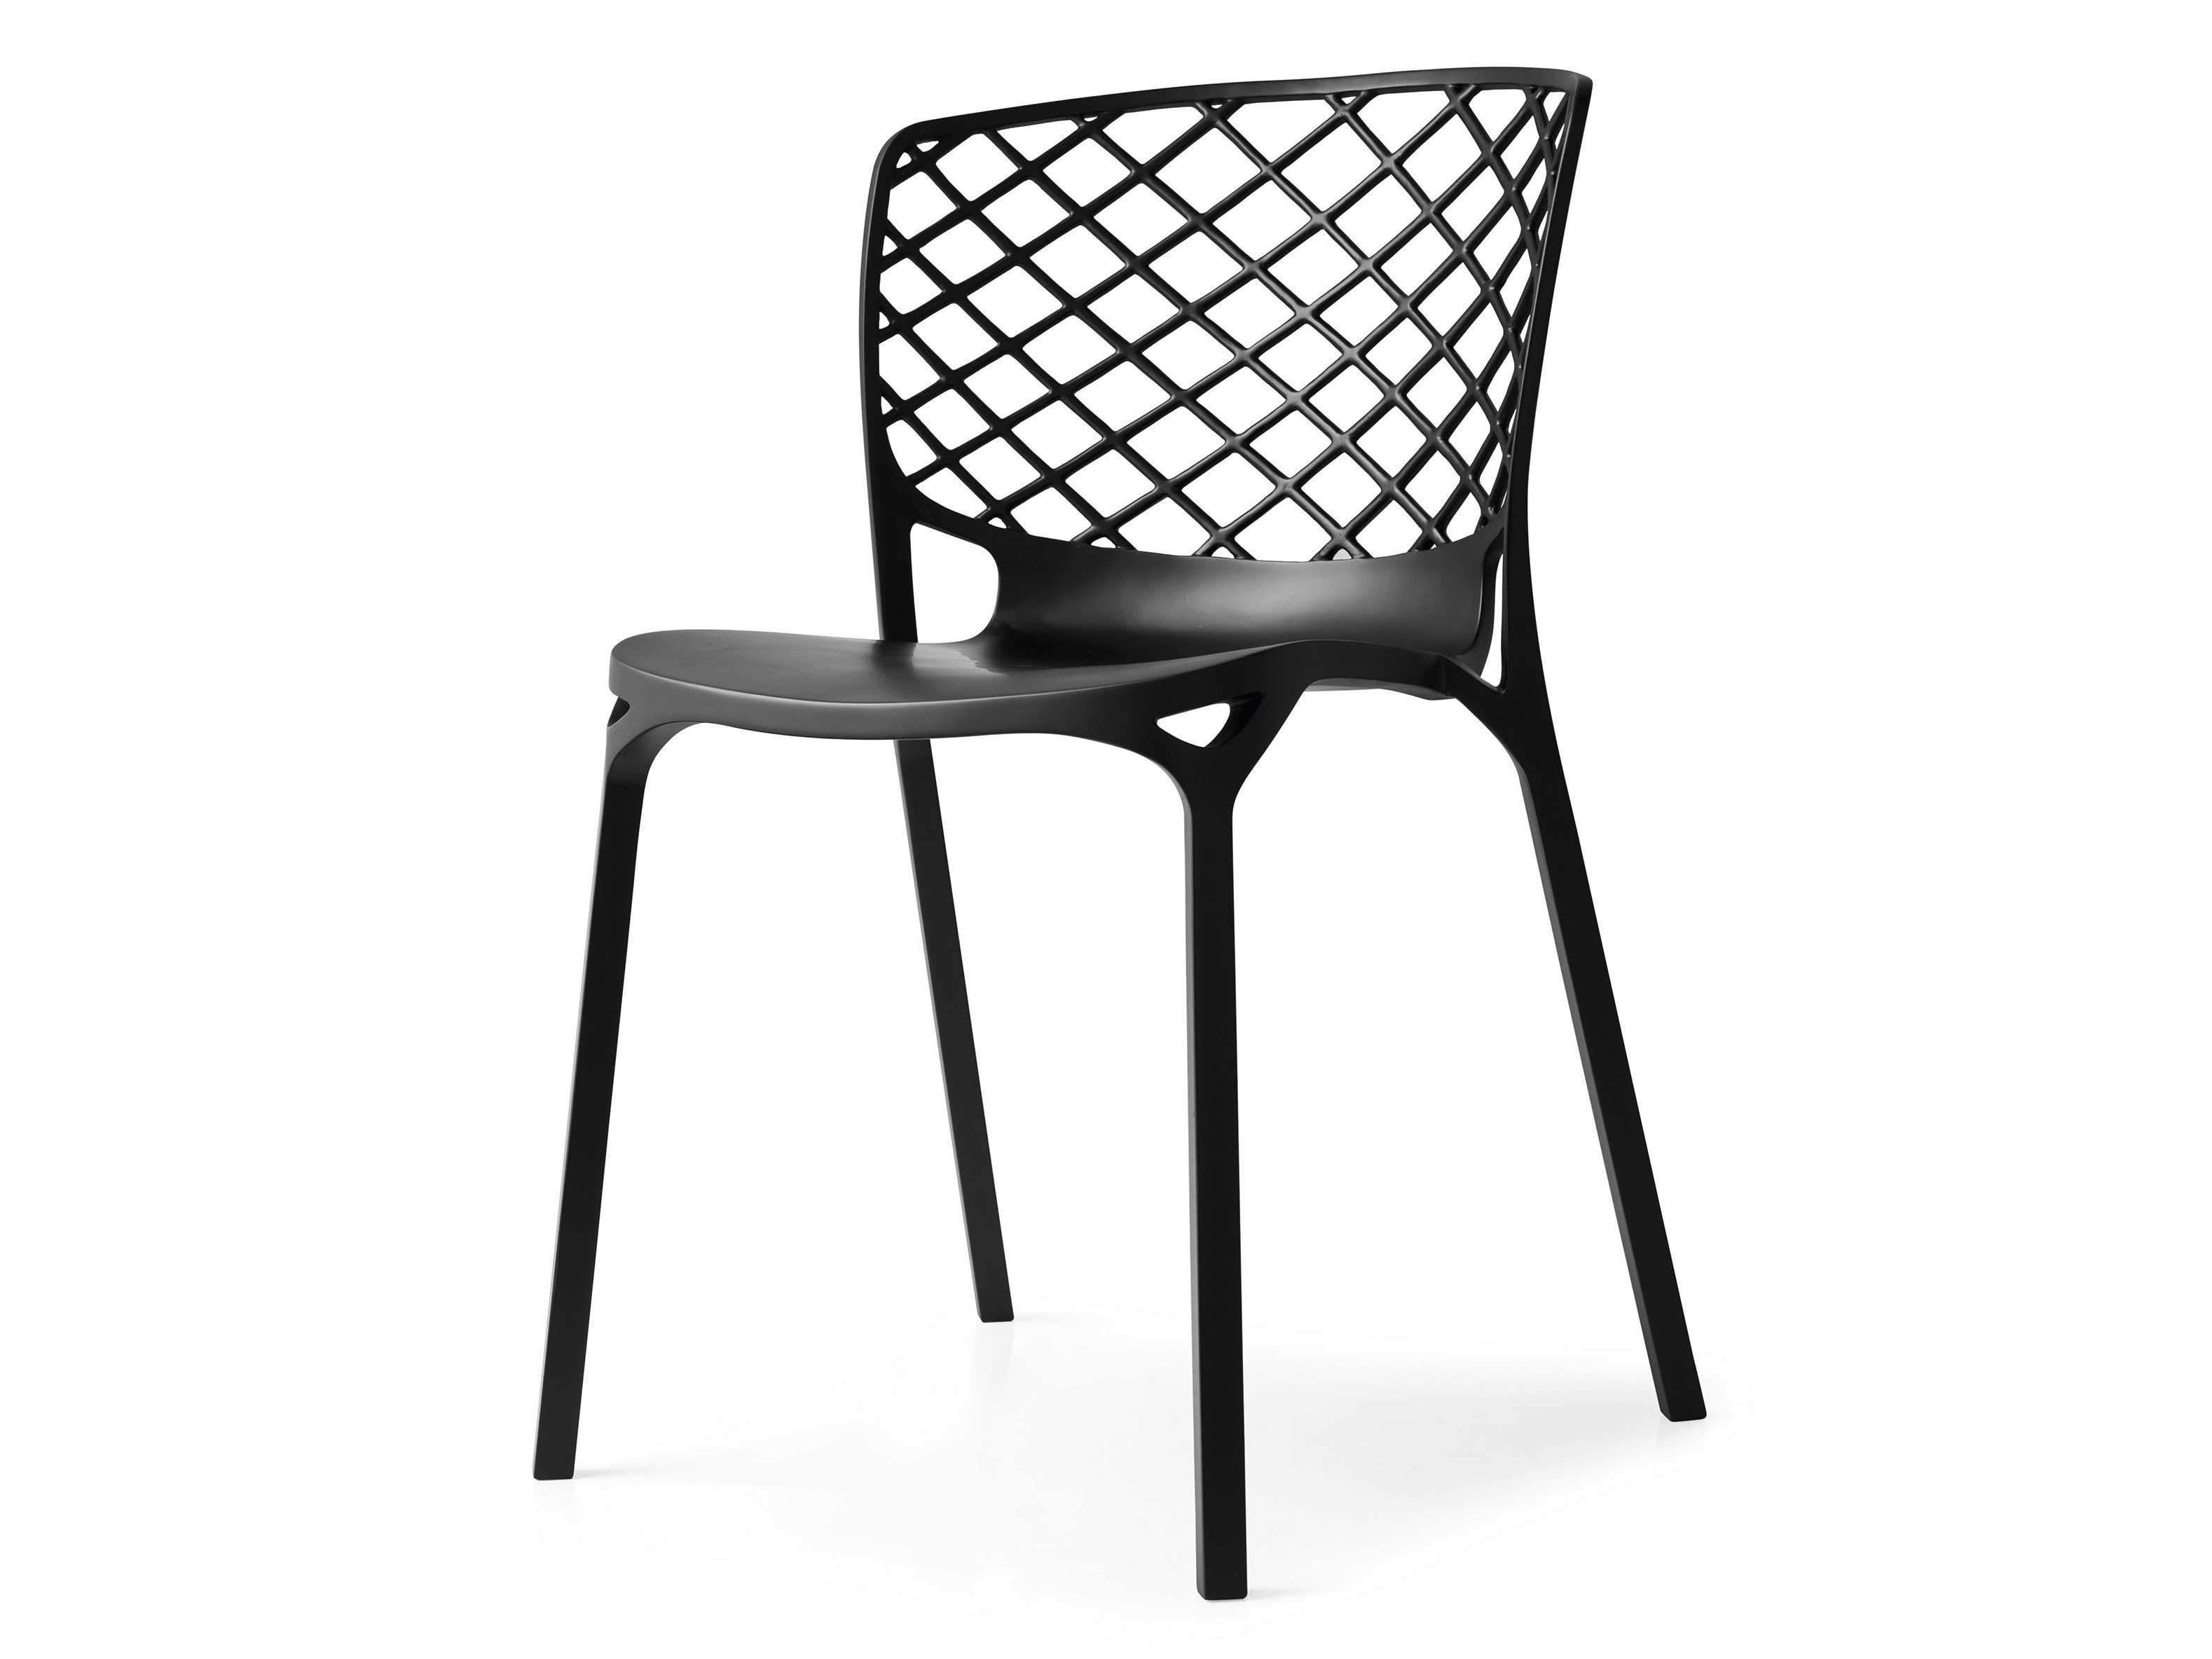 stackable chair in glass fibre reinforced nylon gamera by calligaris design archirivolto. Black Bedroom Furniture Sets. Home Design Ideas